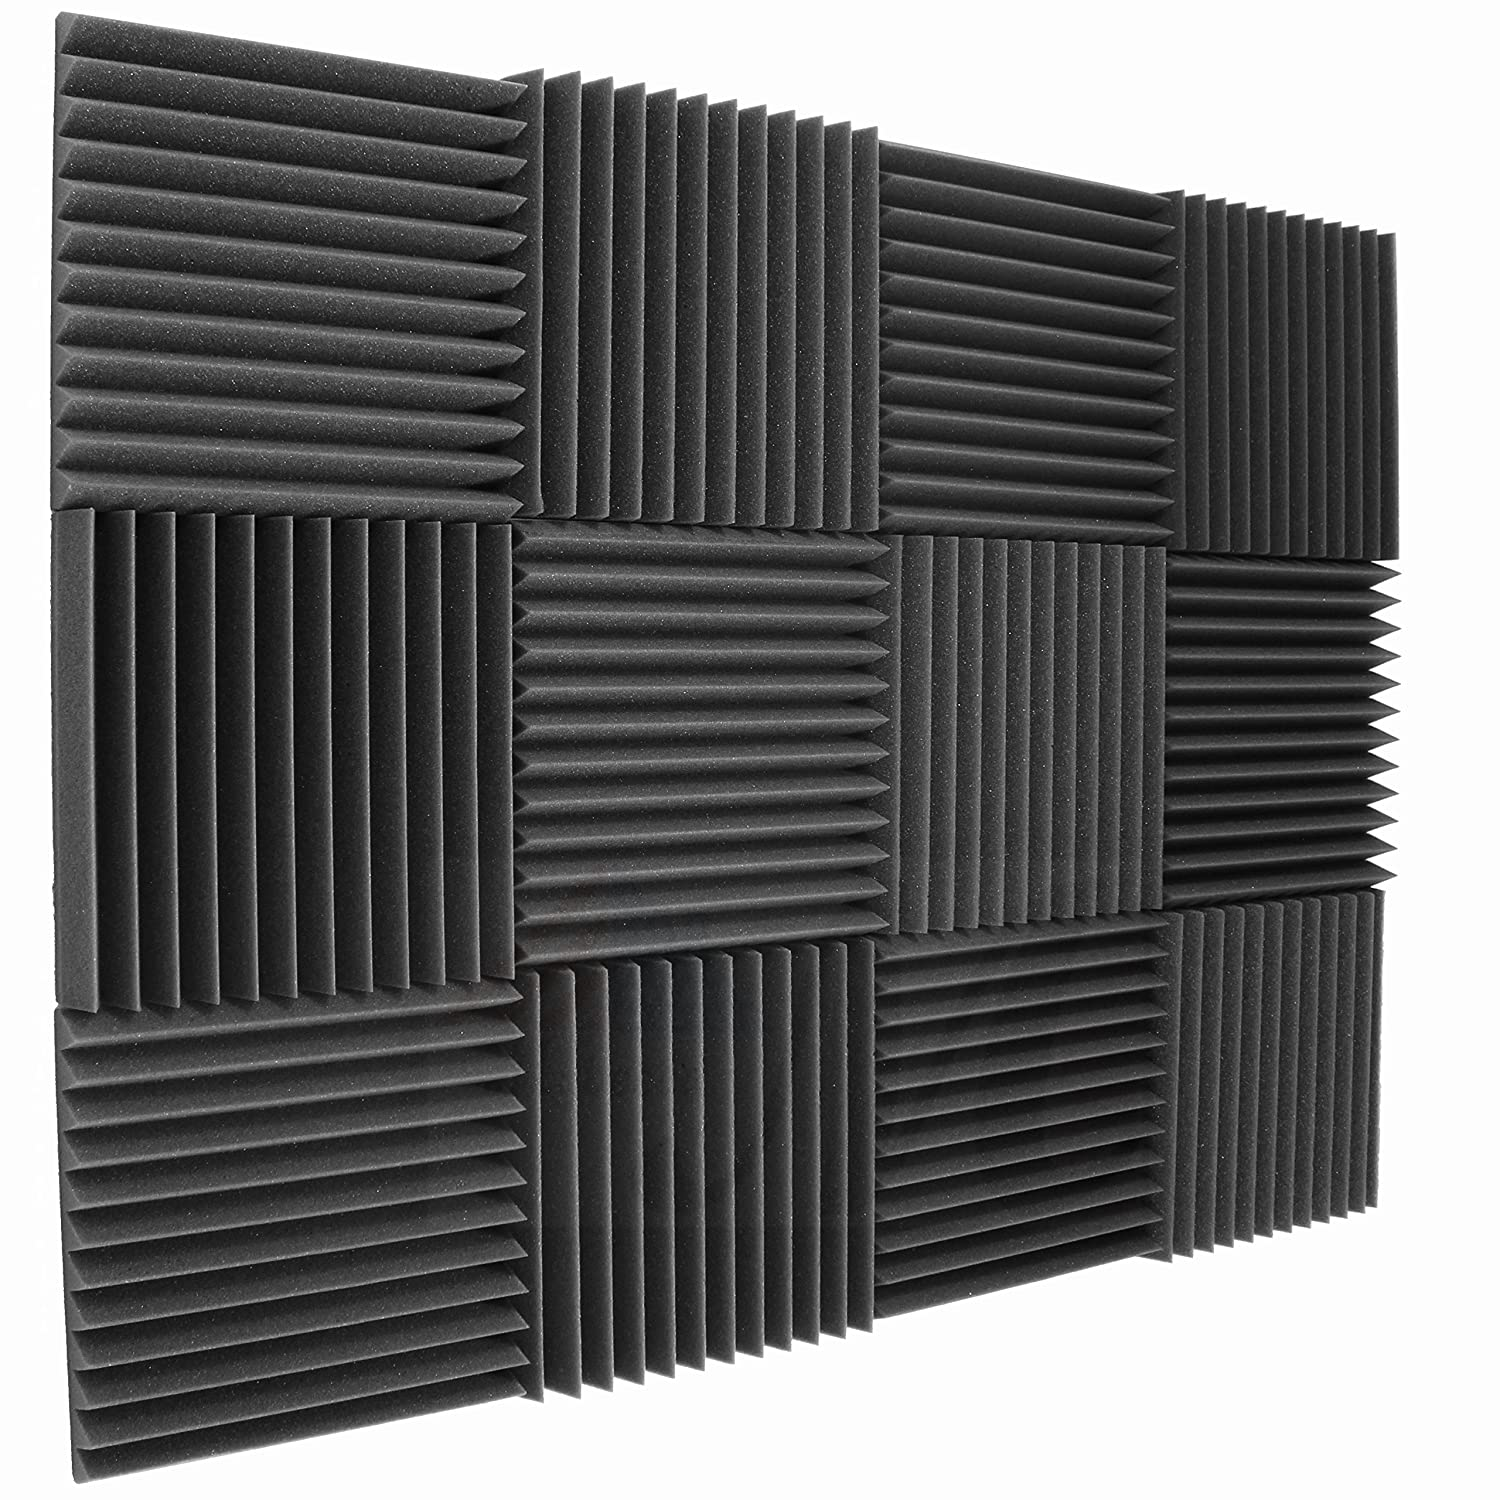 "12 Pack Acoustic Wedge Studio Soundproofing Foam Wall Tiles 12"" X 12"" X 2"" (High Density) Made in USA"